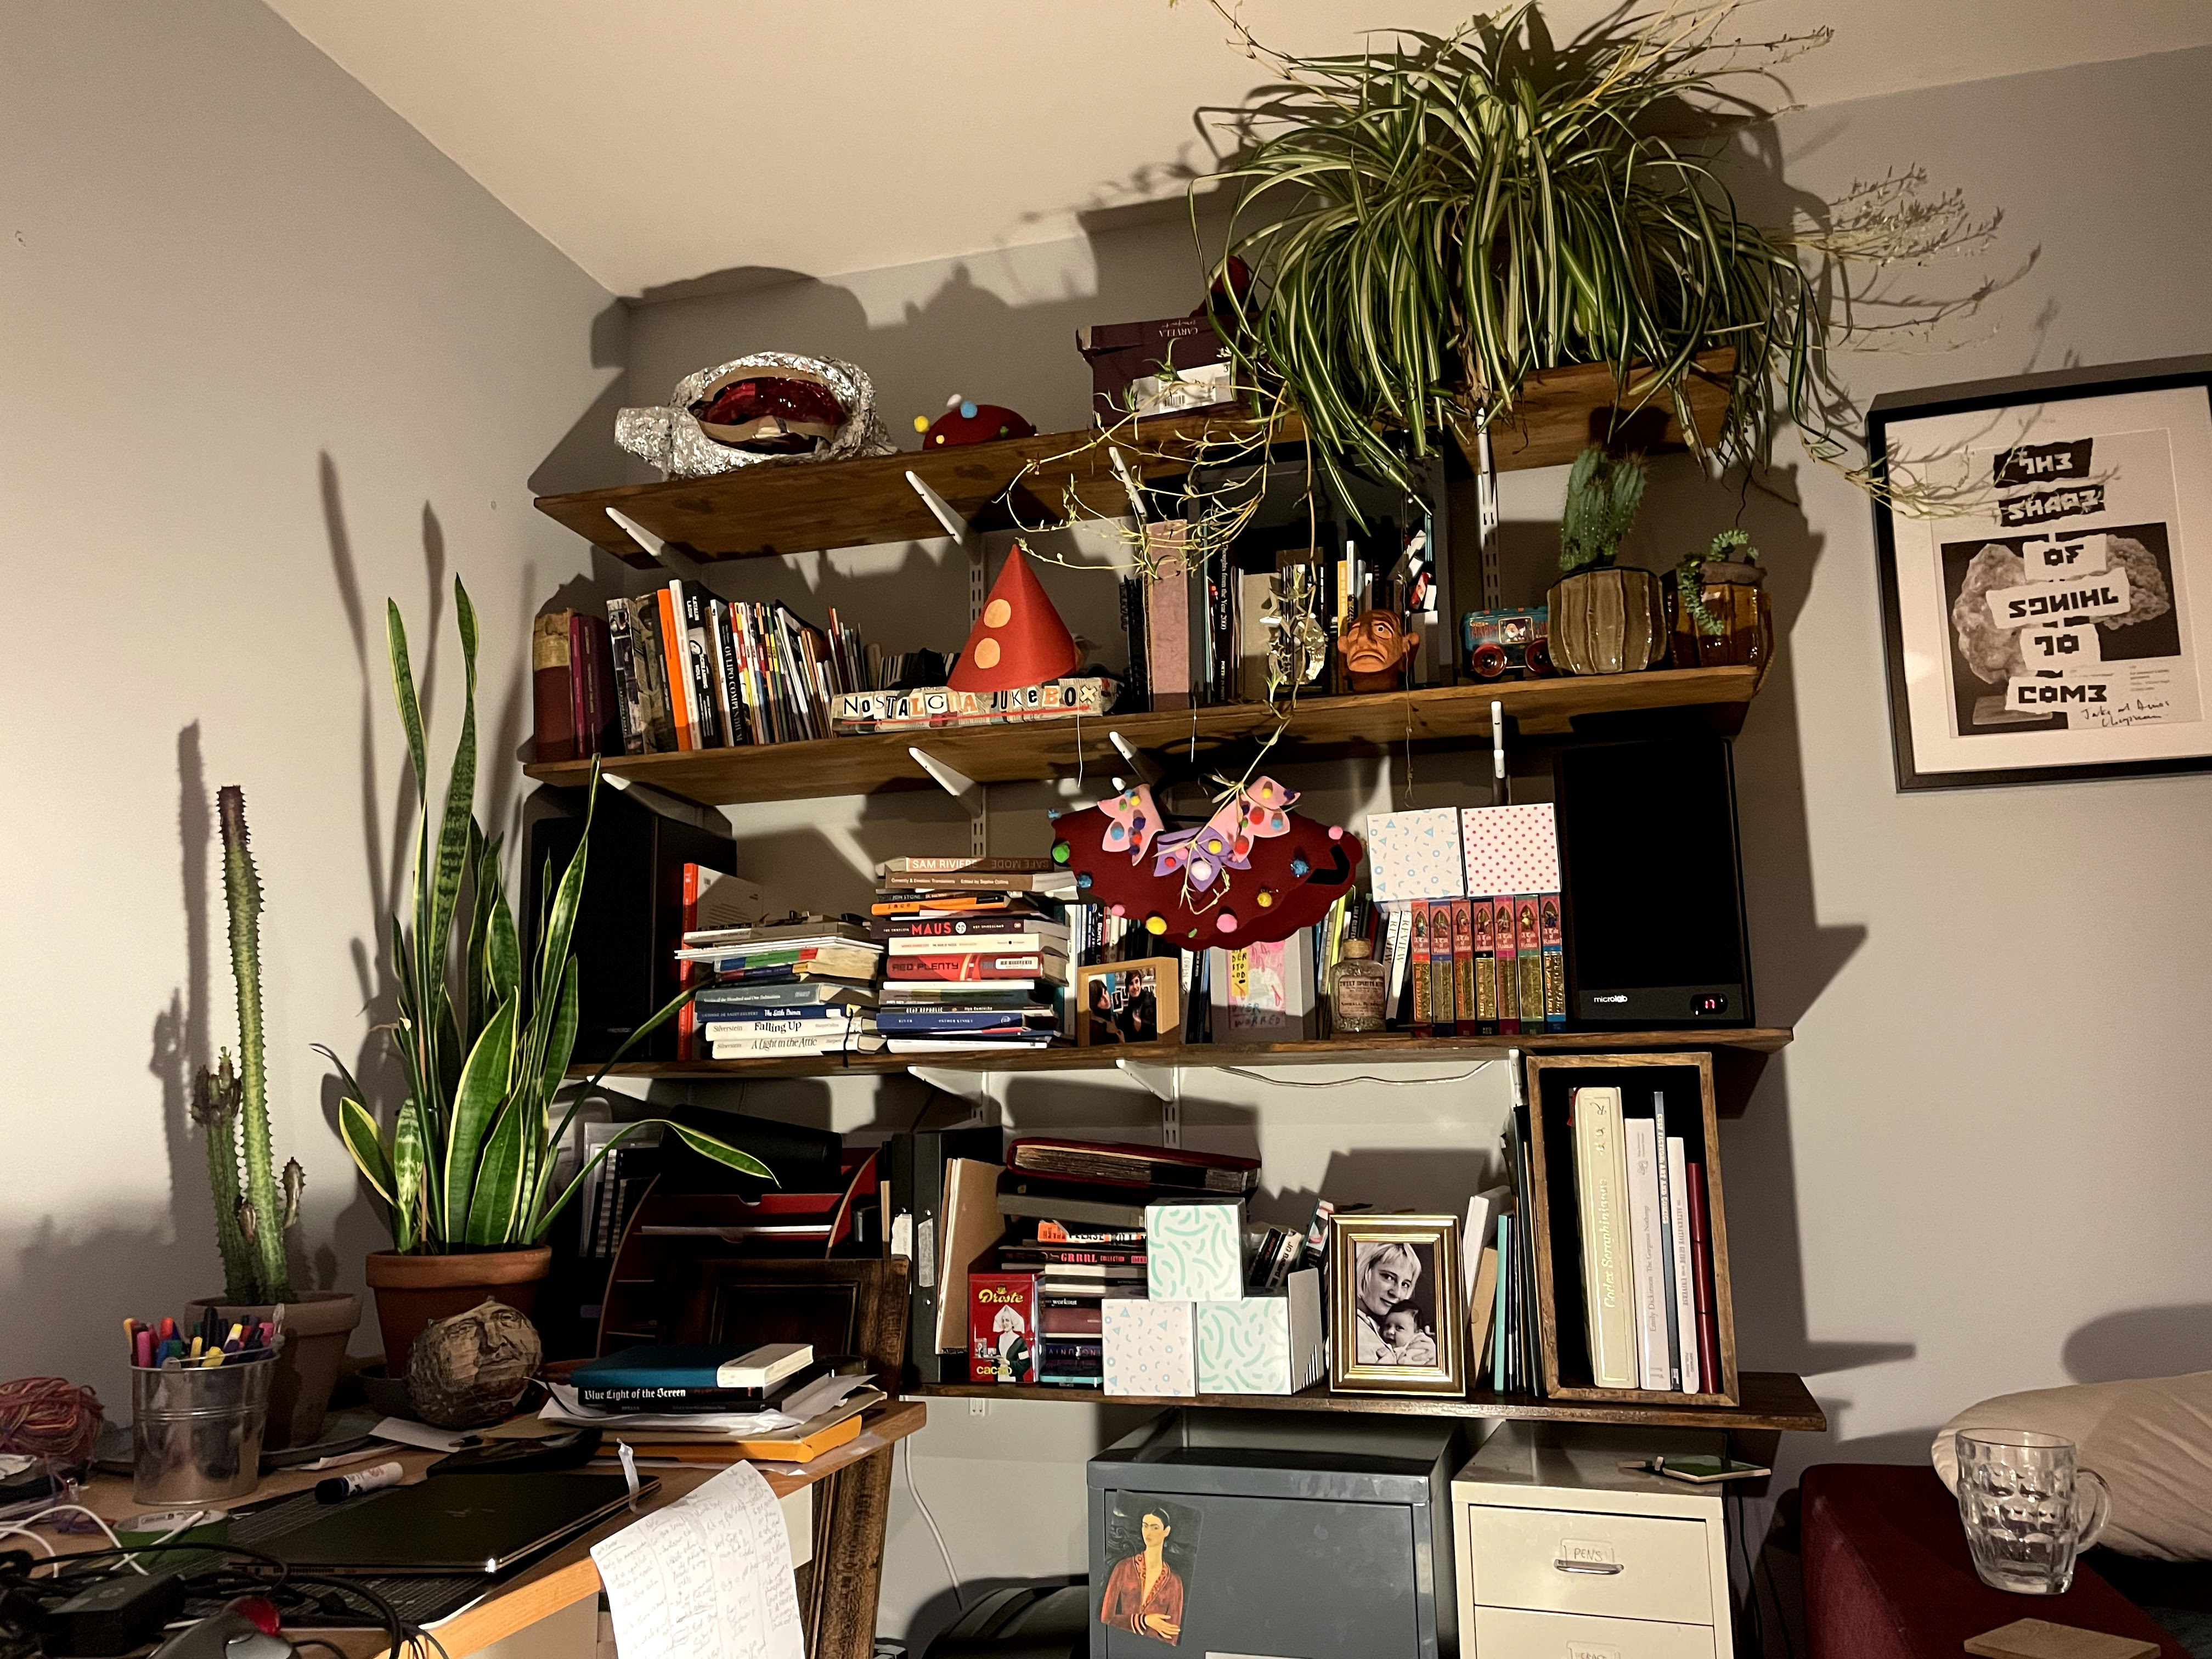 Photograph of shelves in Abi Palmer's flat